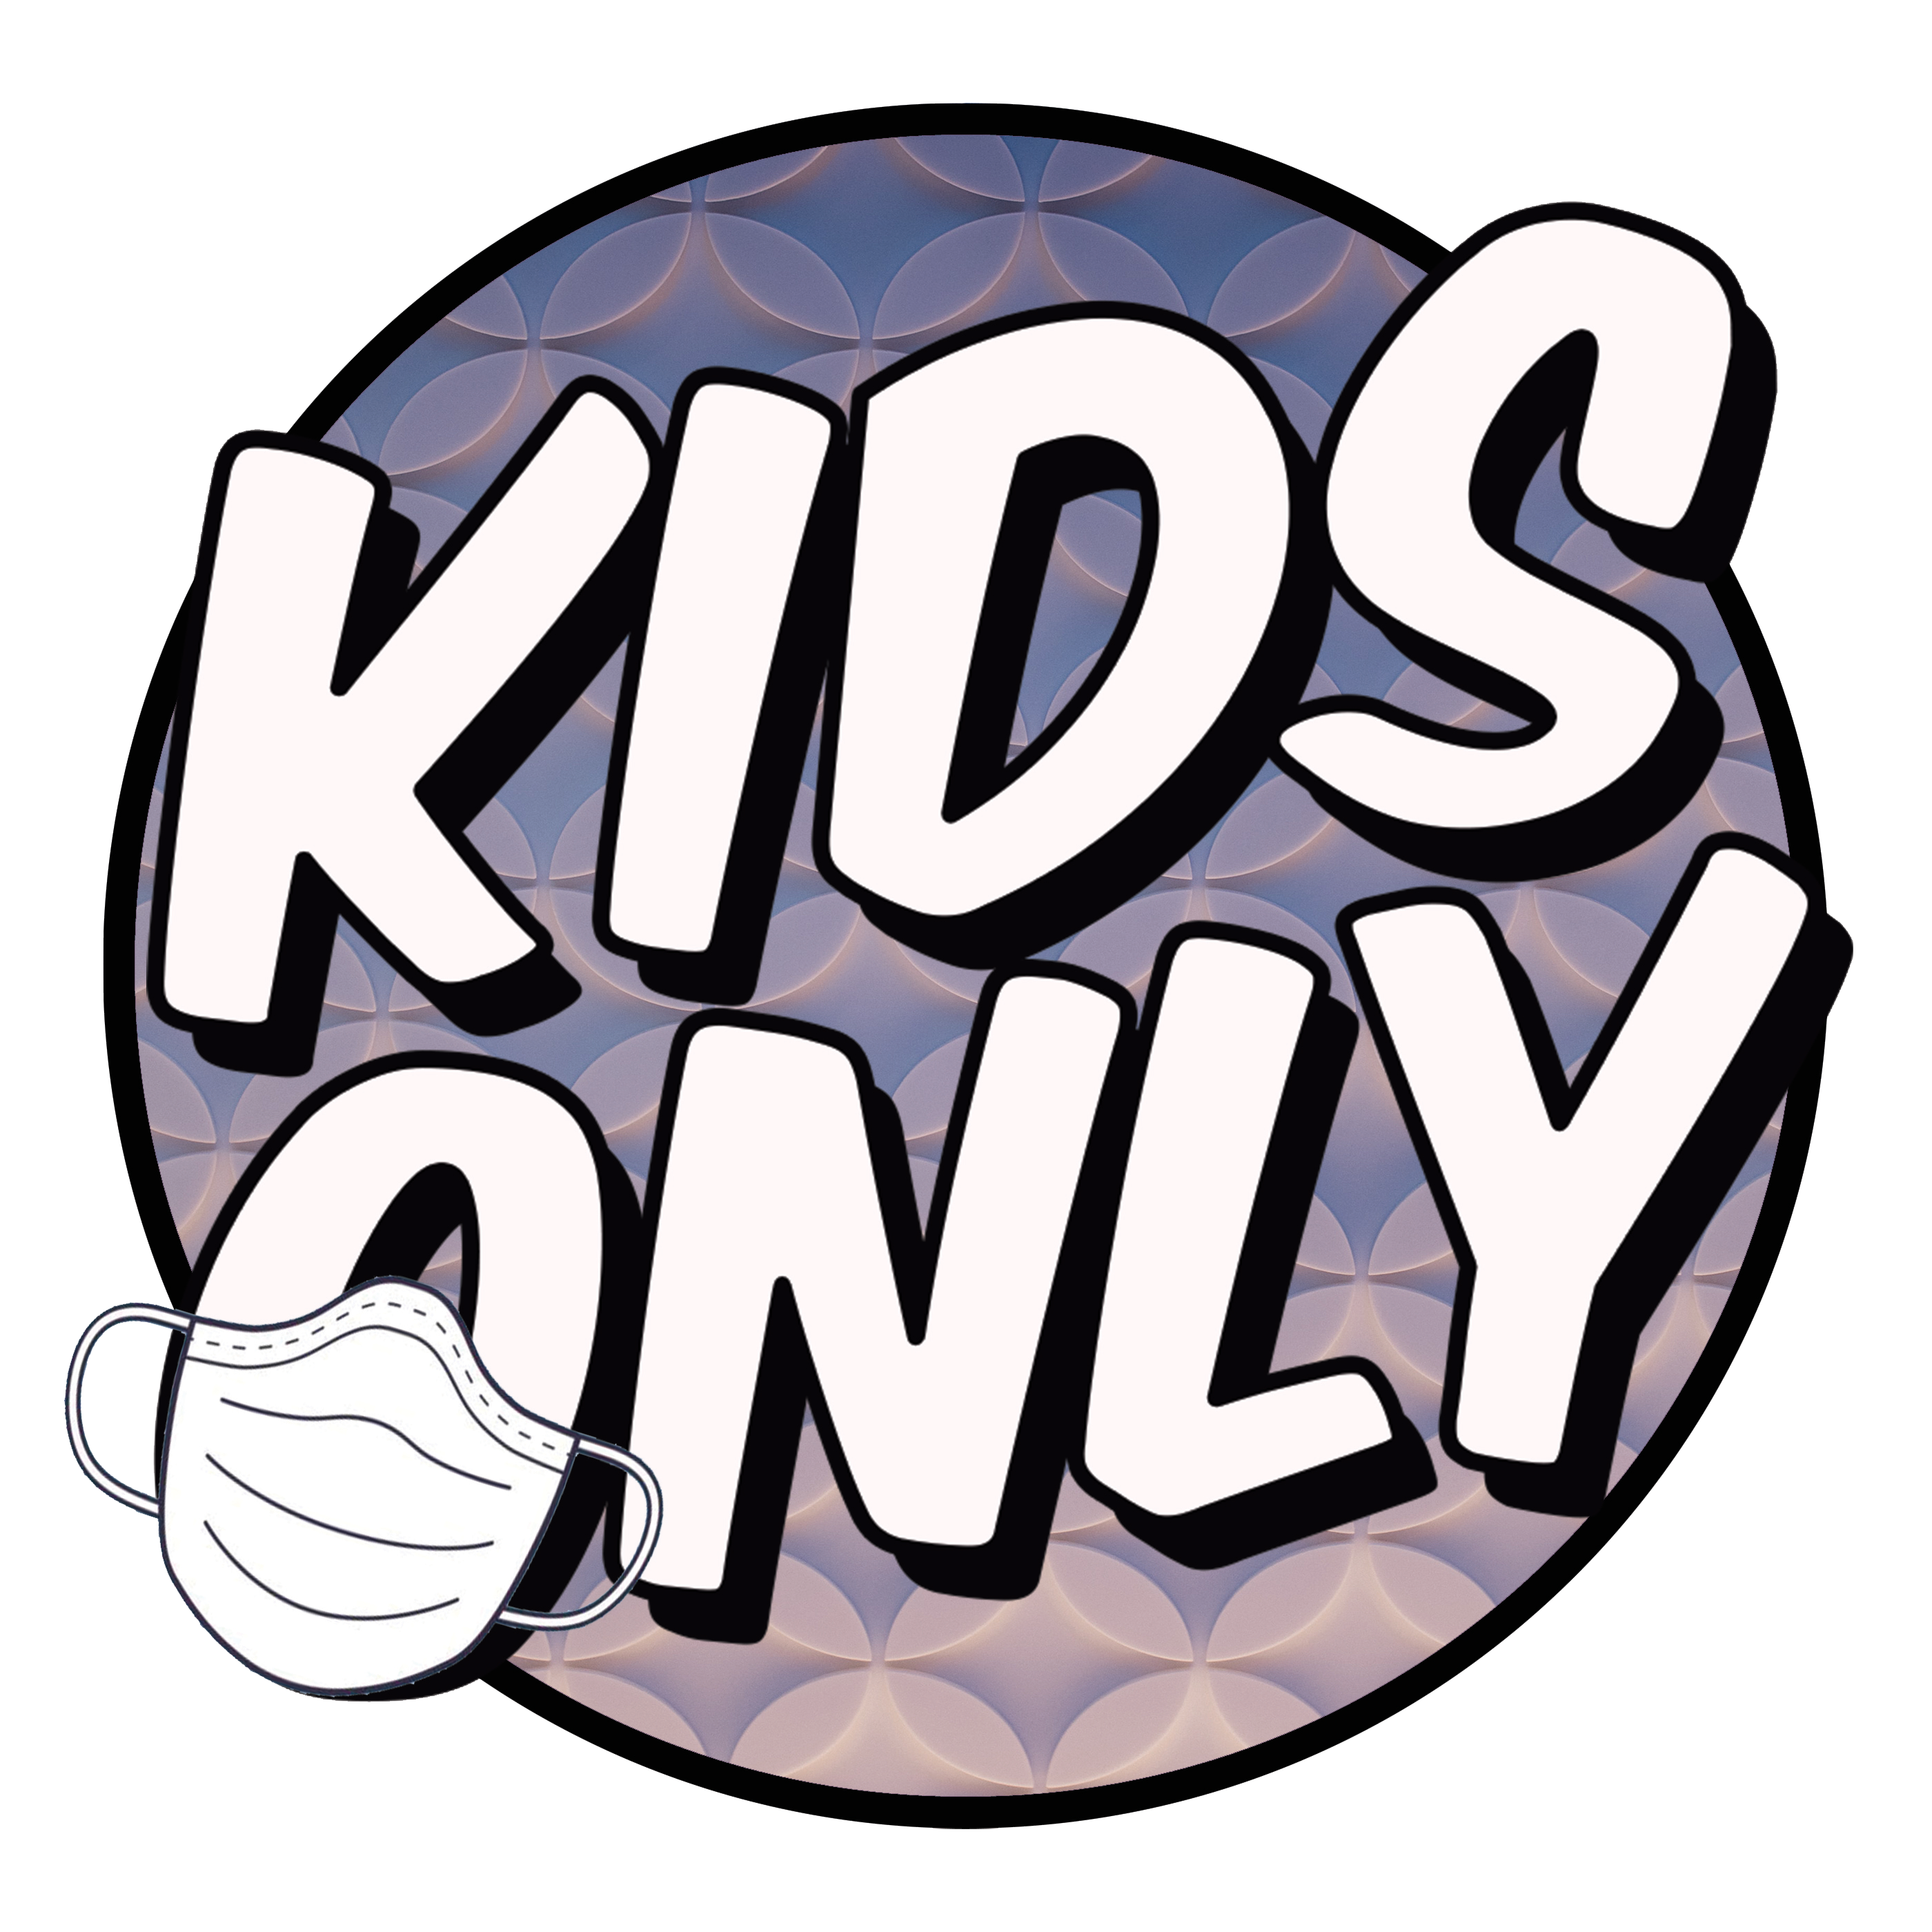 A KIDS ONLY EARLY LEARNING CENTER III